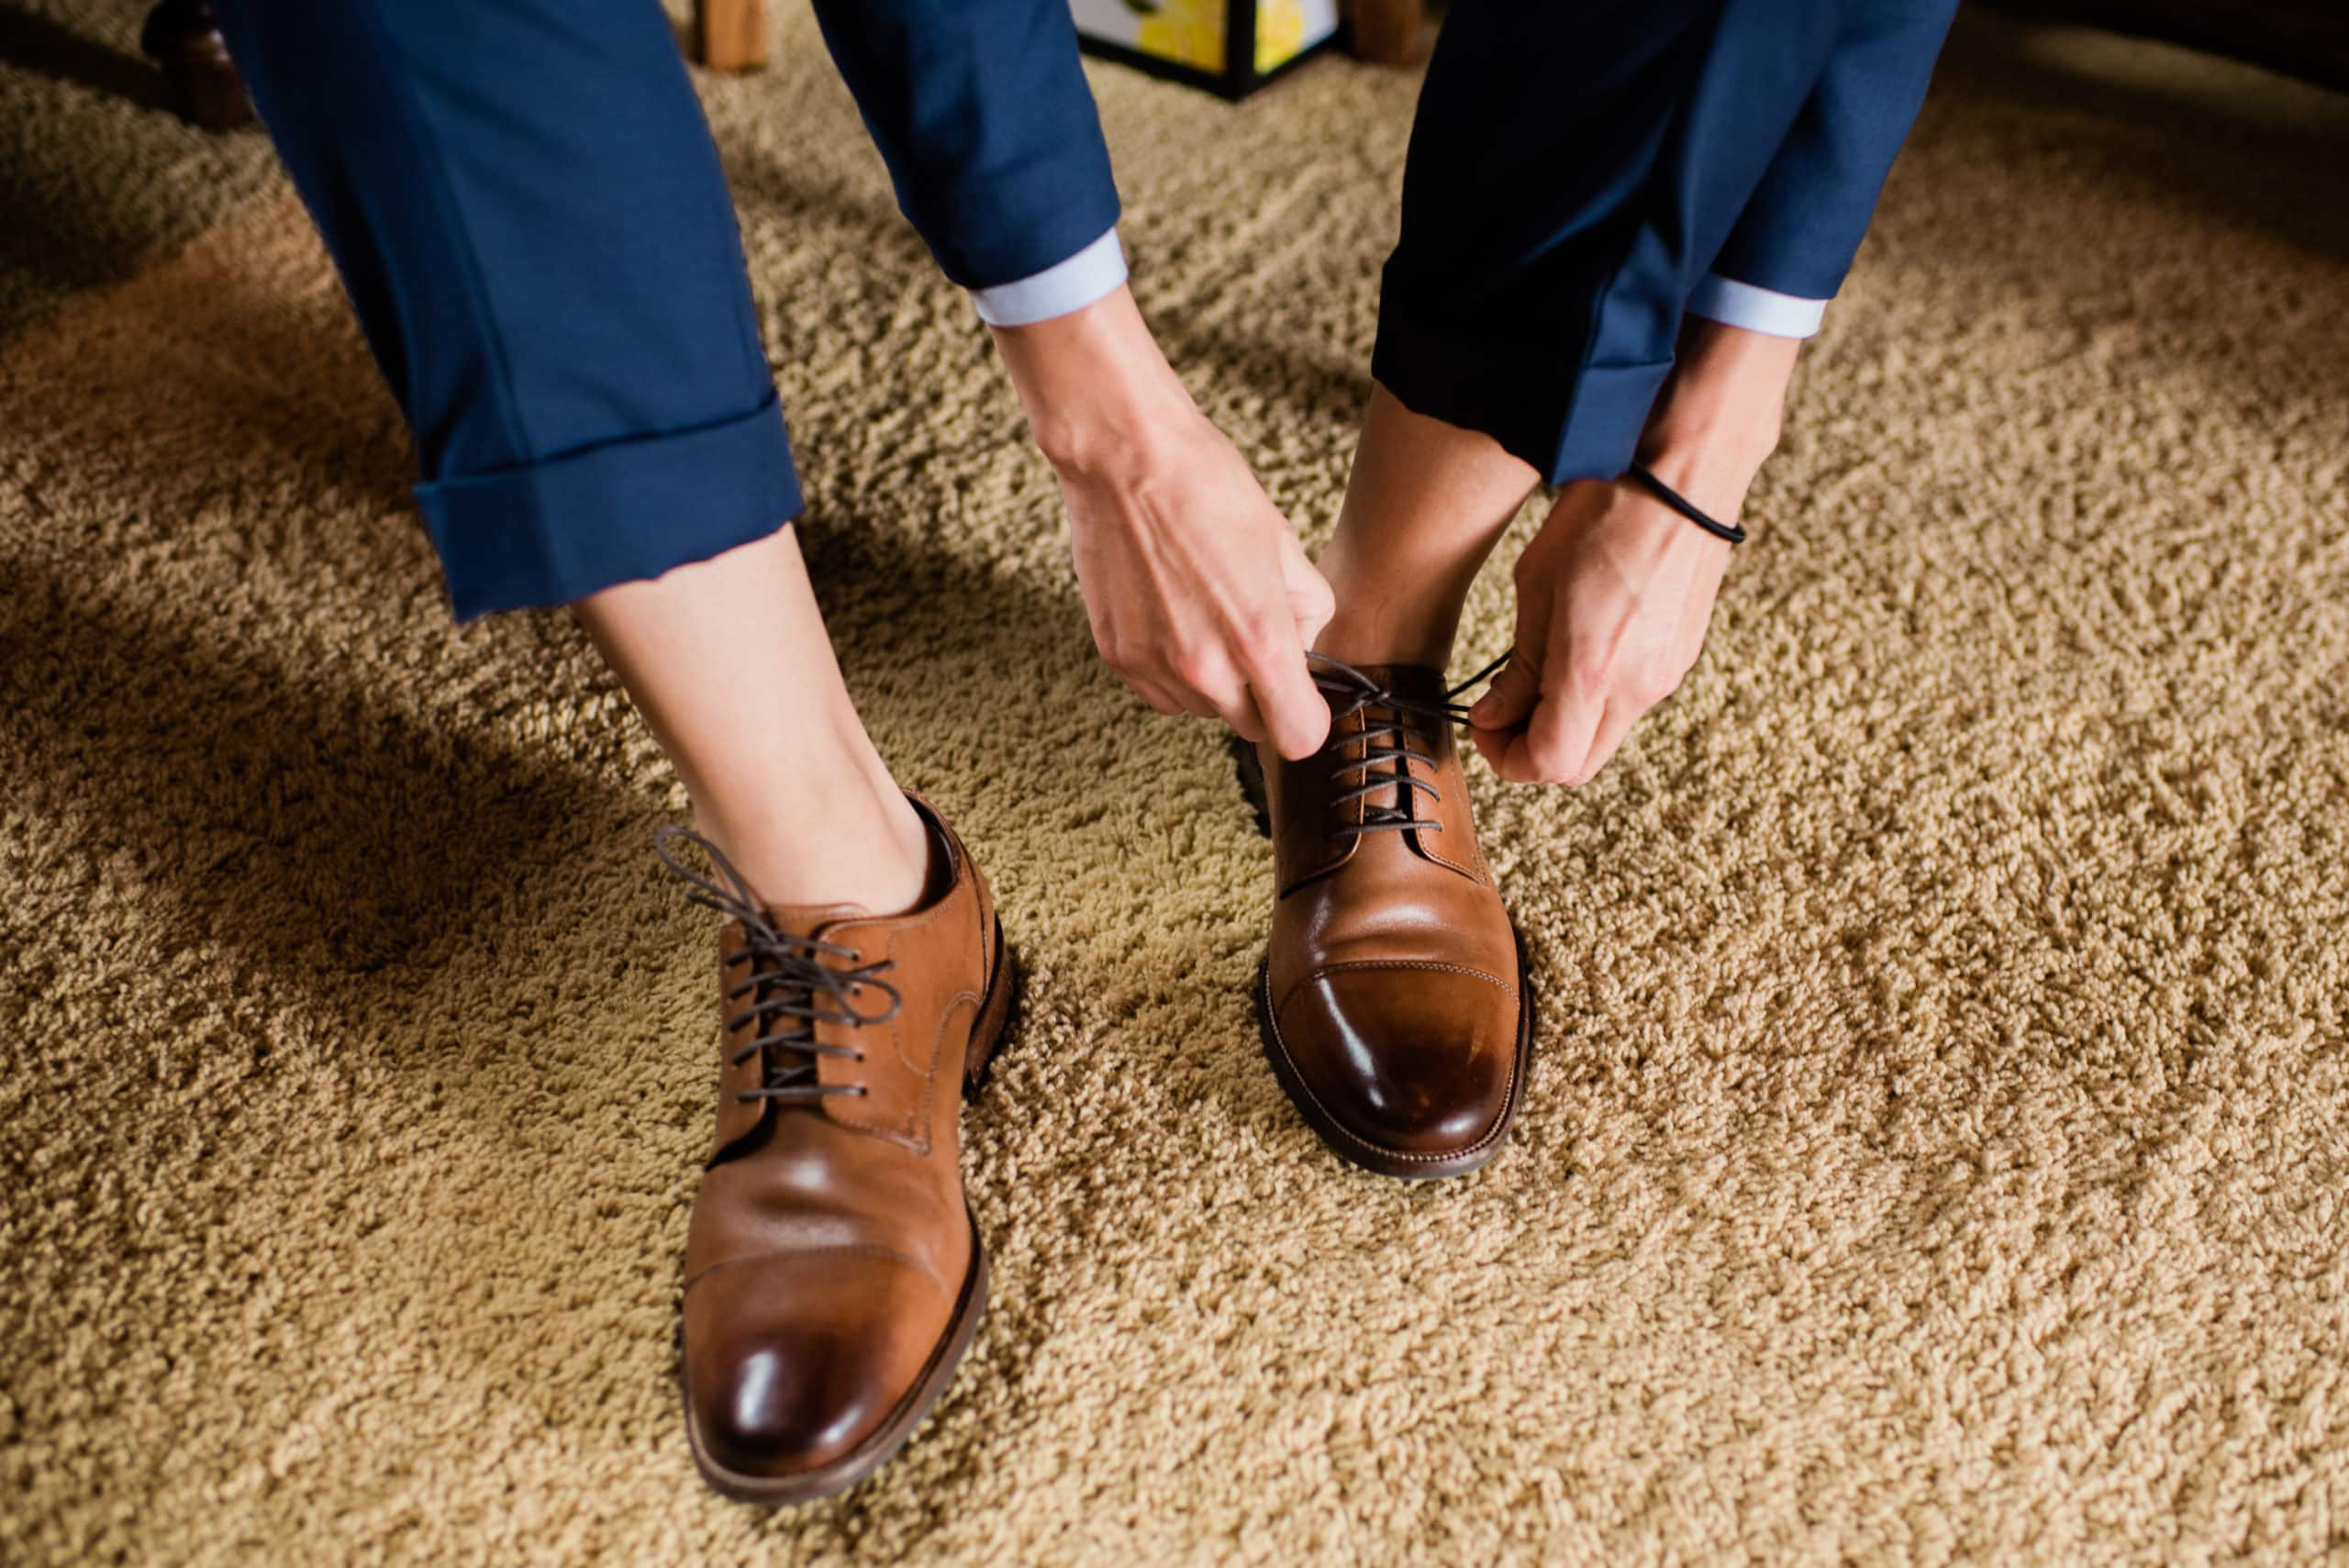 LGBTQ+ wedding suite with shoes lace up wingtips